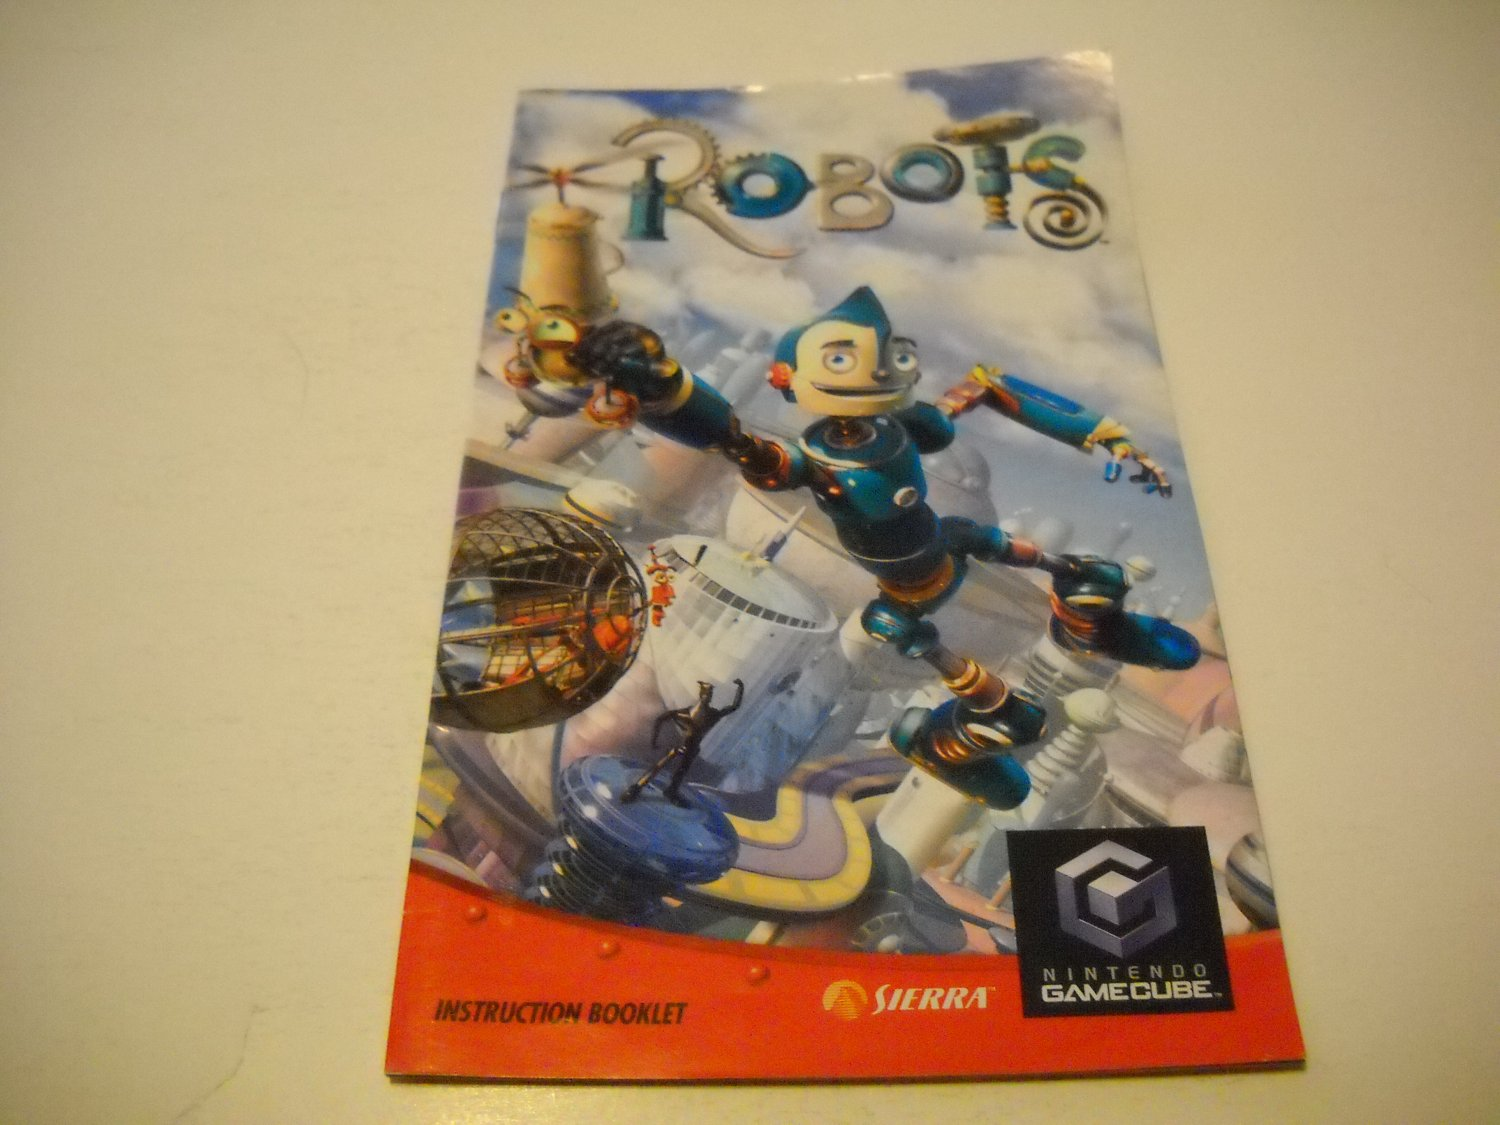 Manual ONLY ~  for Robots   Gamecube